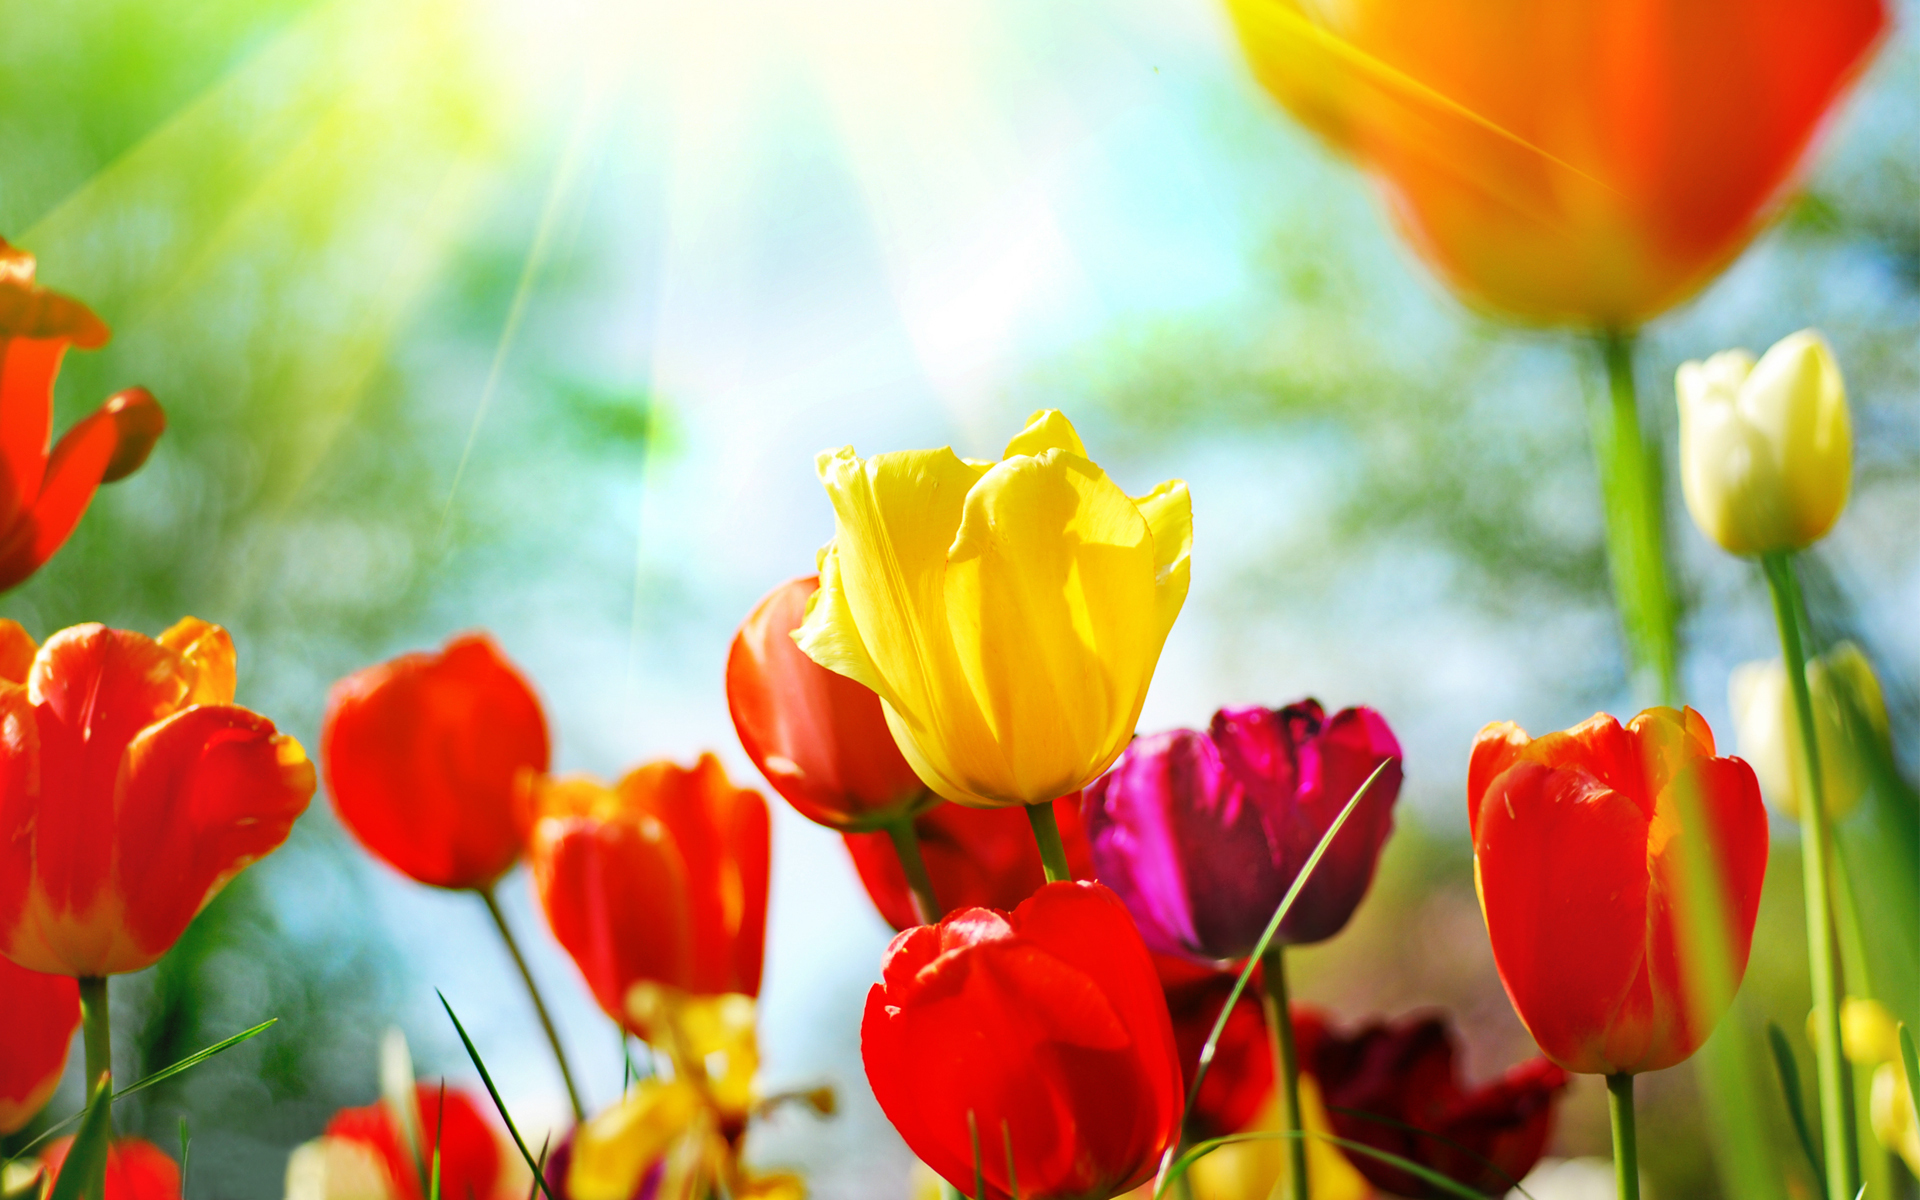 spring background free download